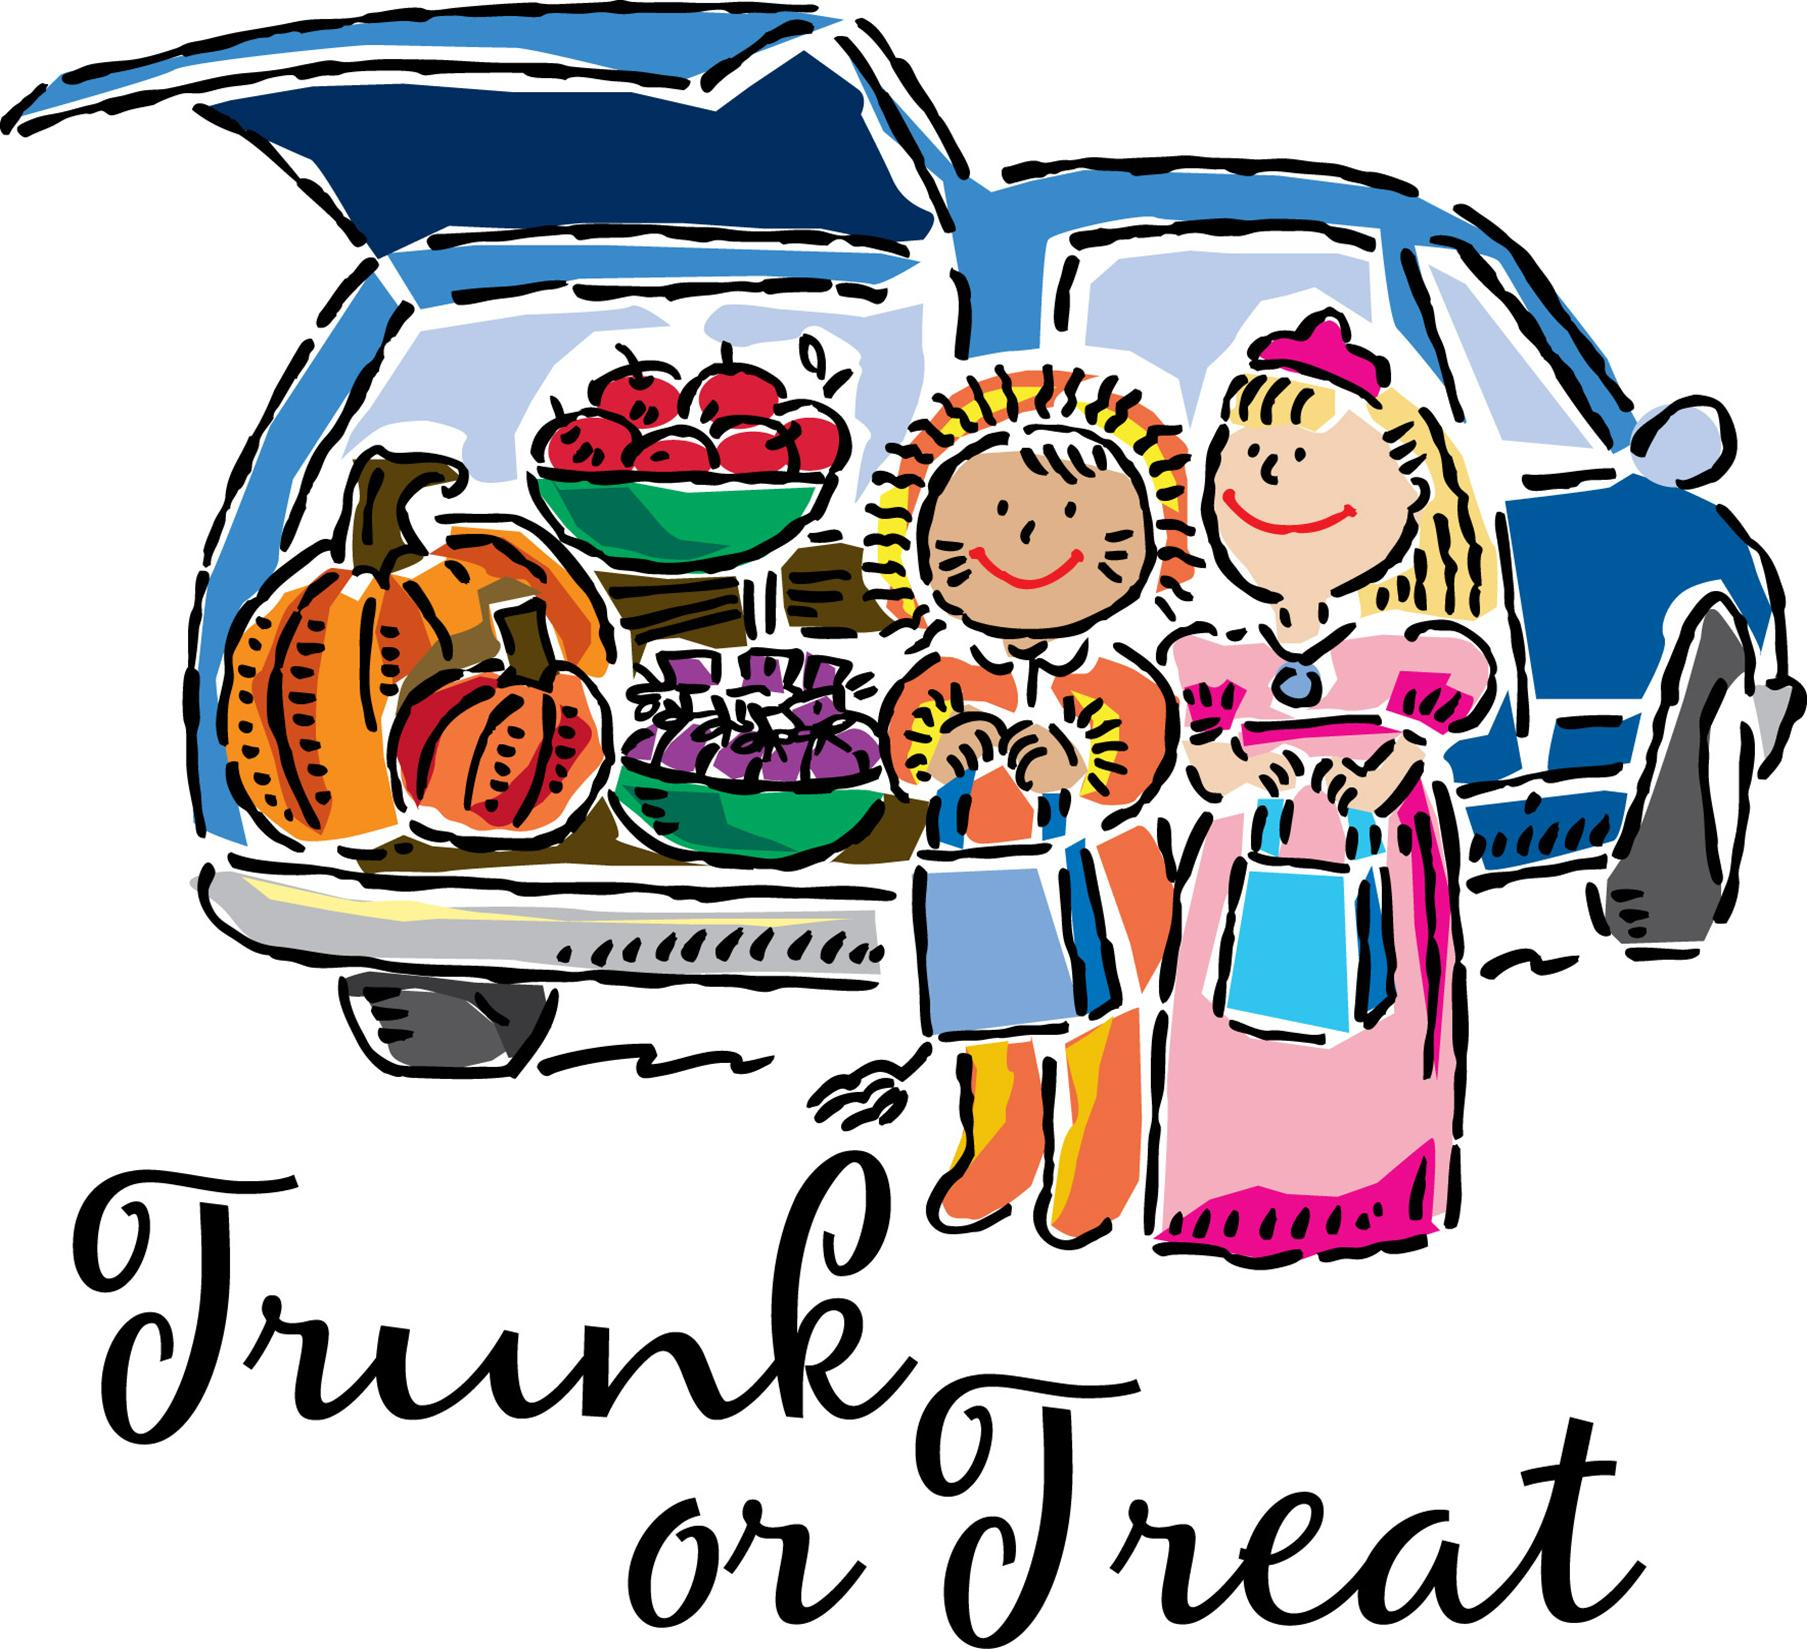 Clipart trunk or treat picture freeuse Free Trunk Or Treat Clipart, Download Free Clip Art, Free Clip Art ... picture freeuse